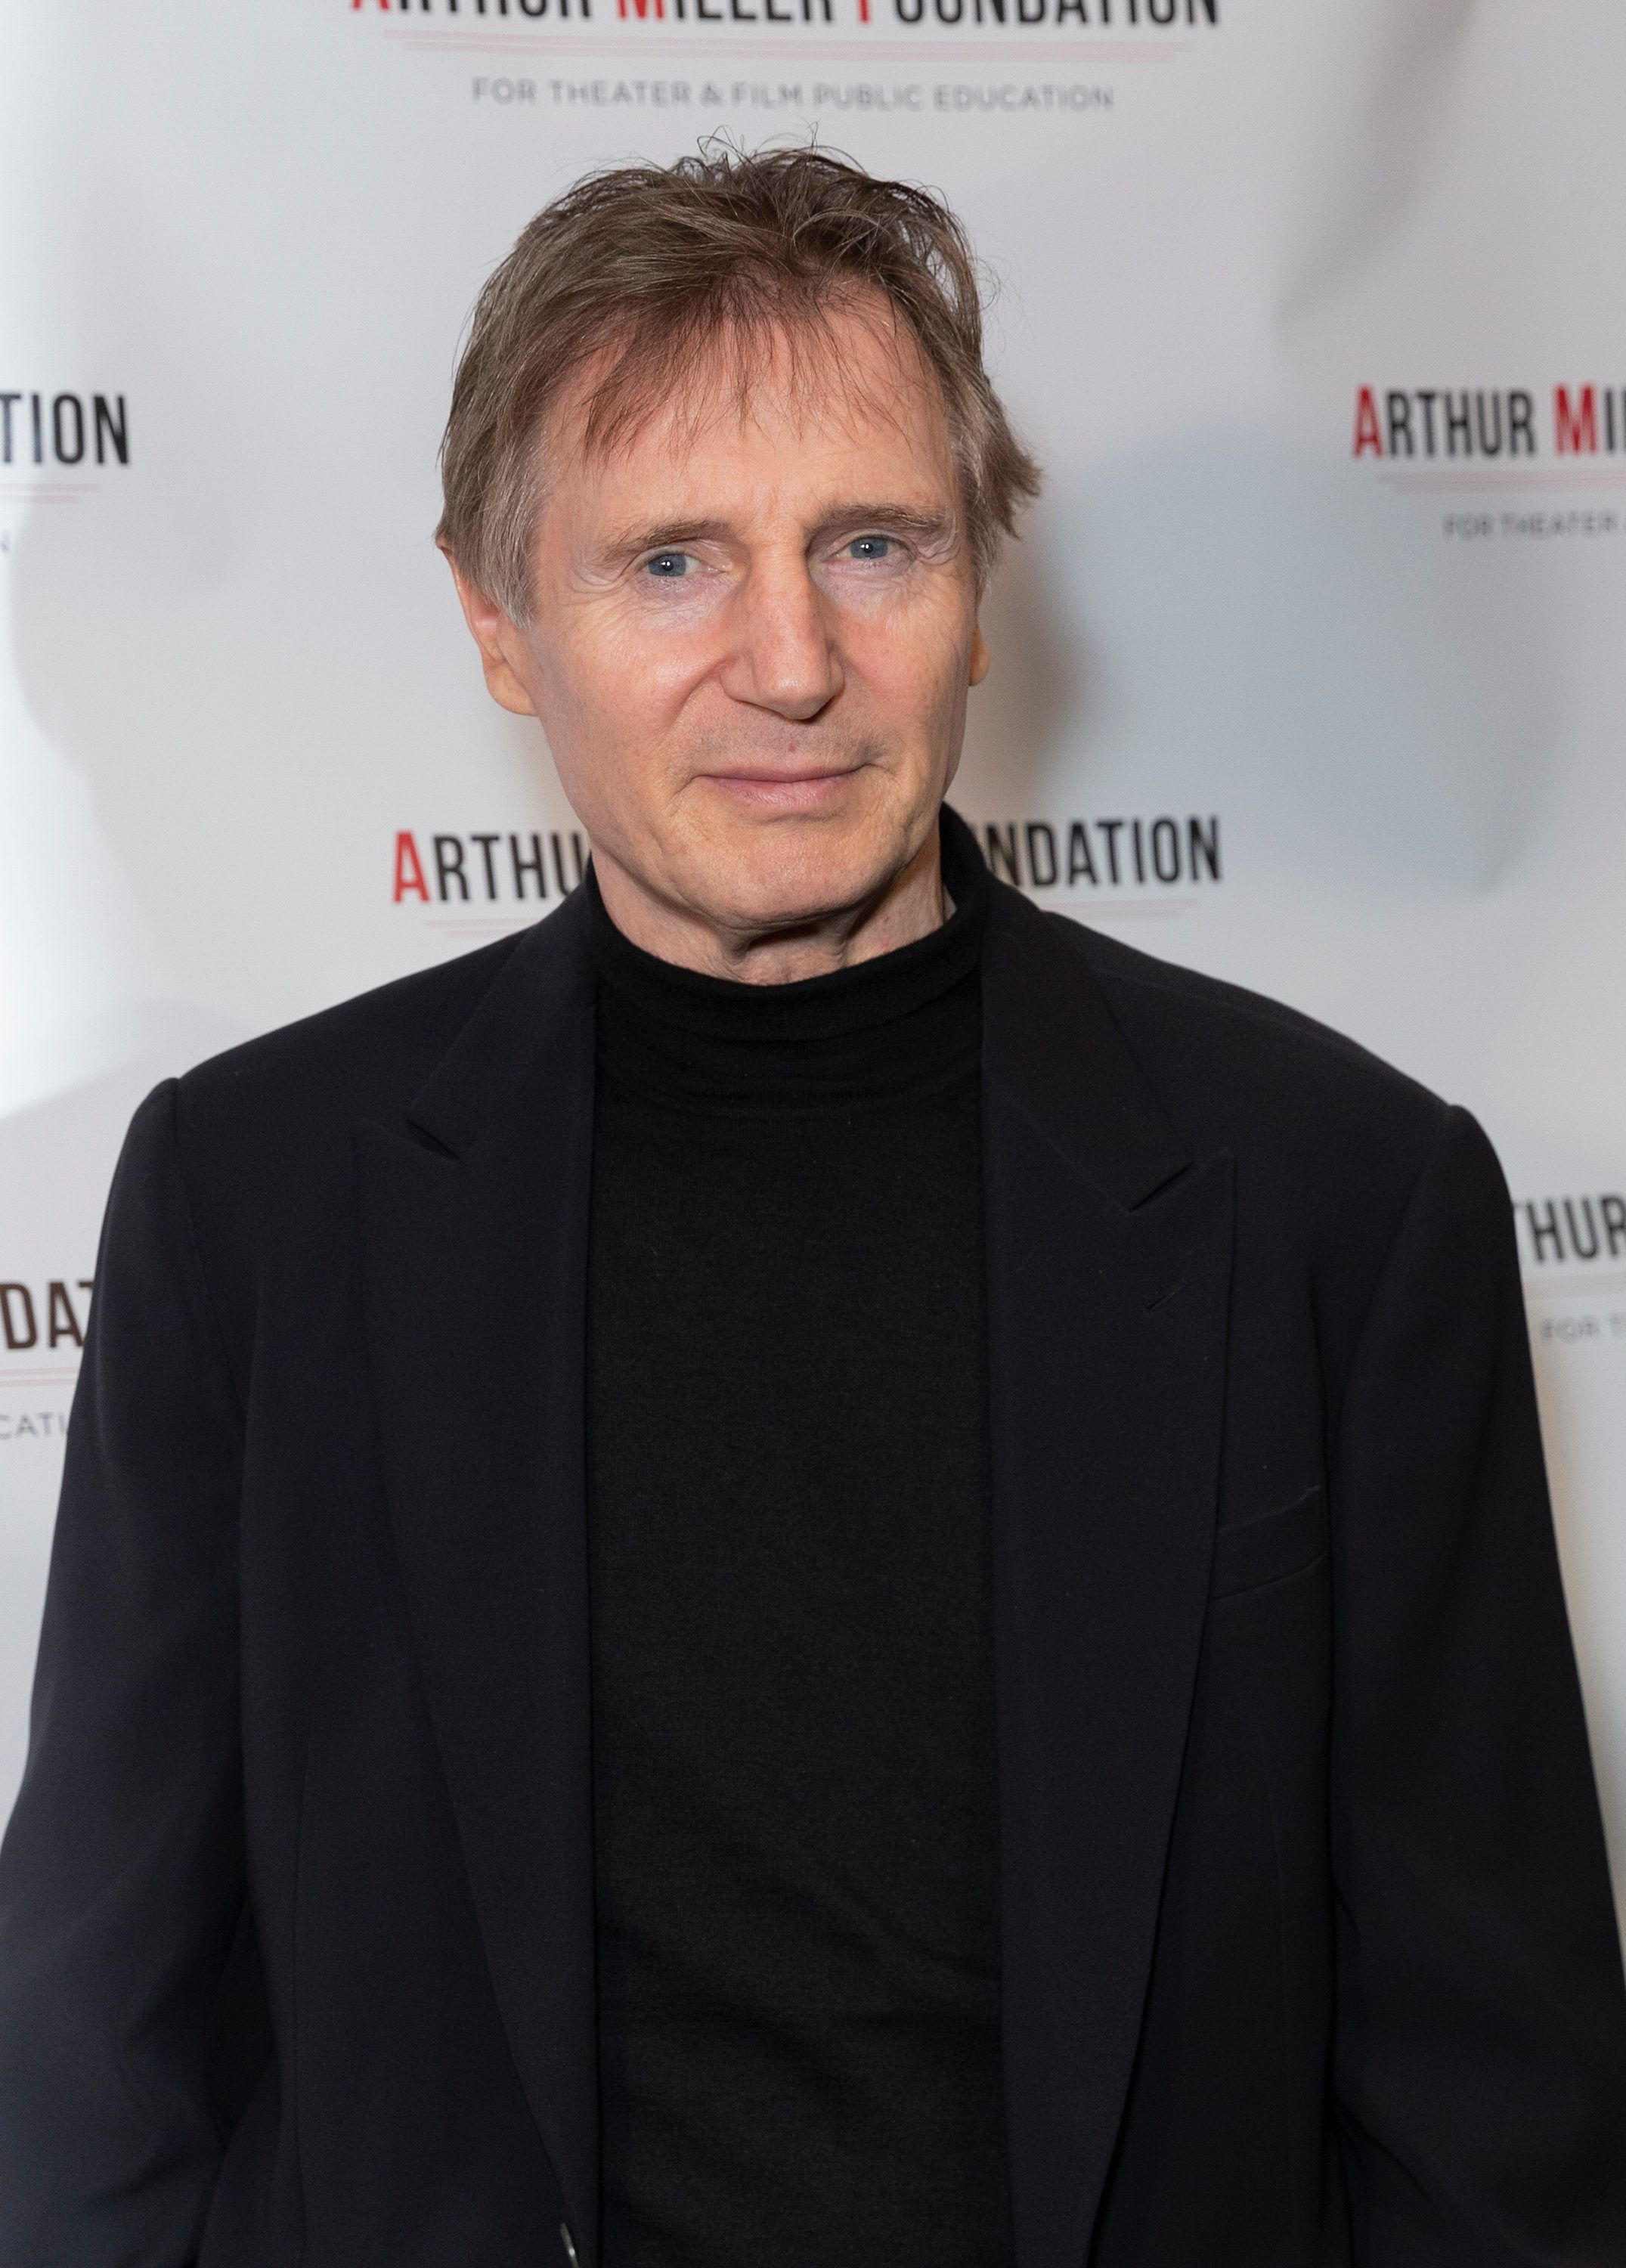 Liam Neeson is mourning the loss of his nephew, Ronan